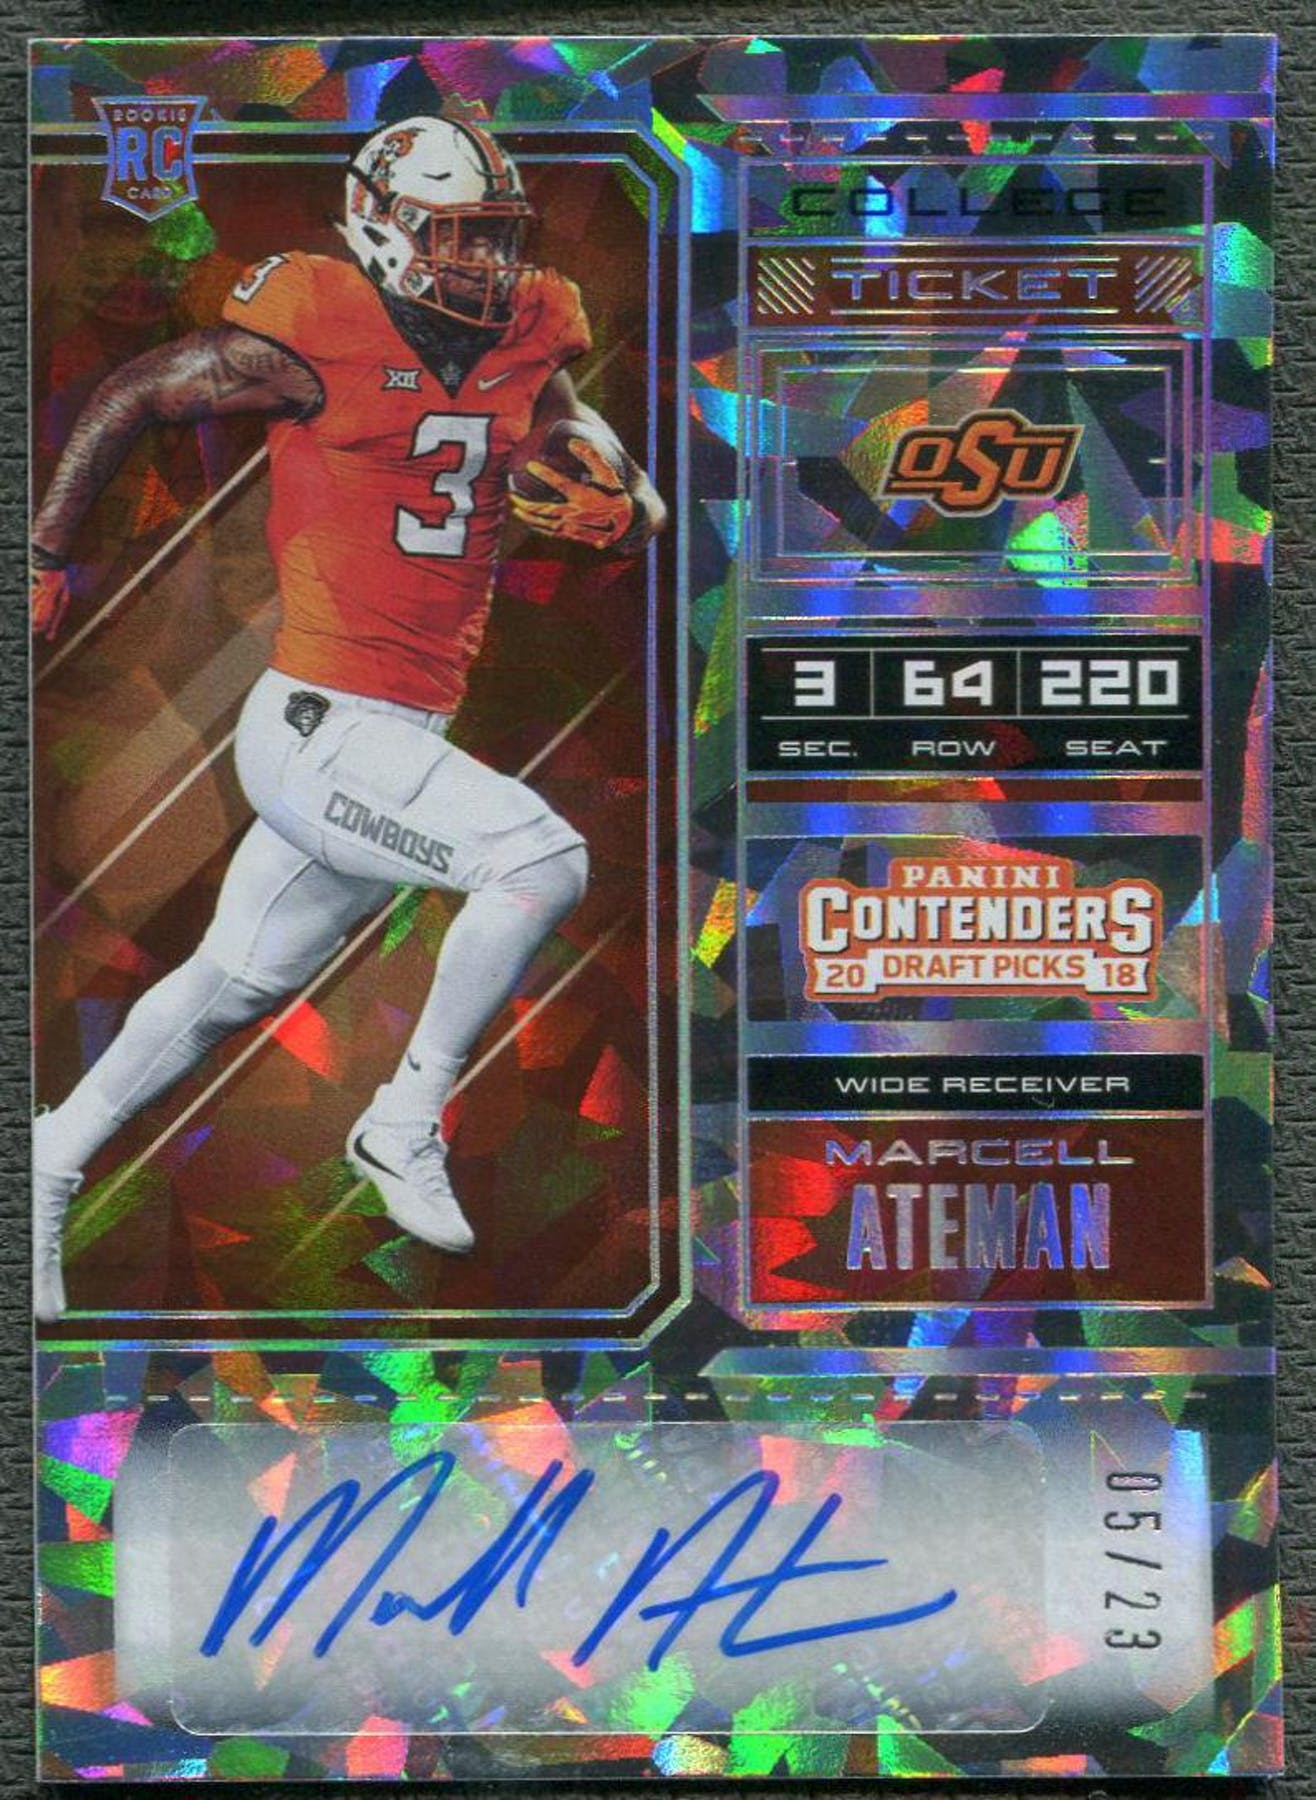 low priced 1a3d8 04006 2018 Panini Contenders Draft Picks #148 Marcell Ateman Cracked Ice Rookie  Auto #05/23